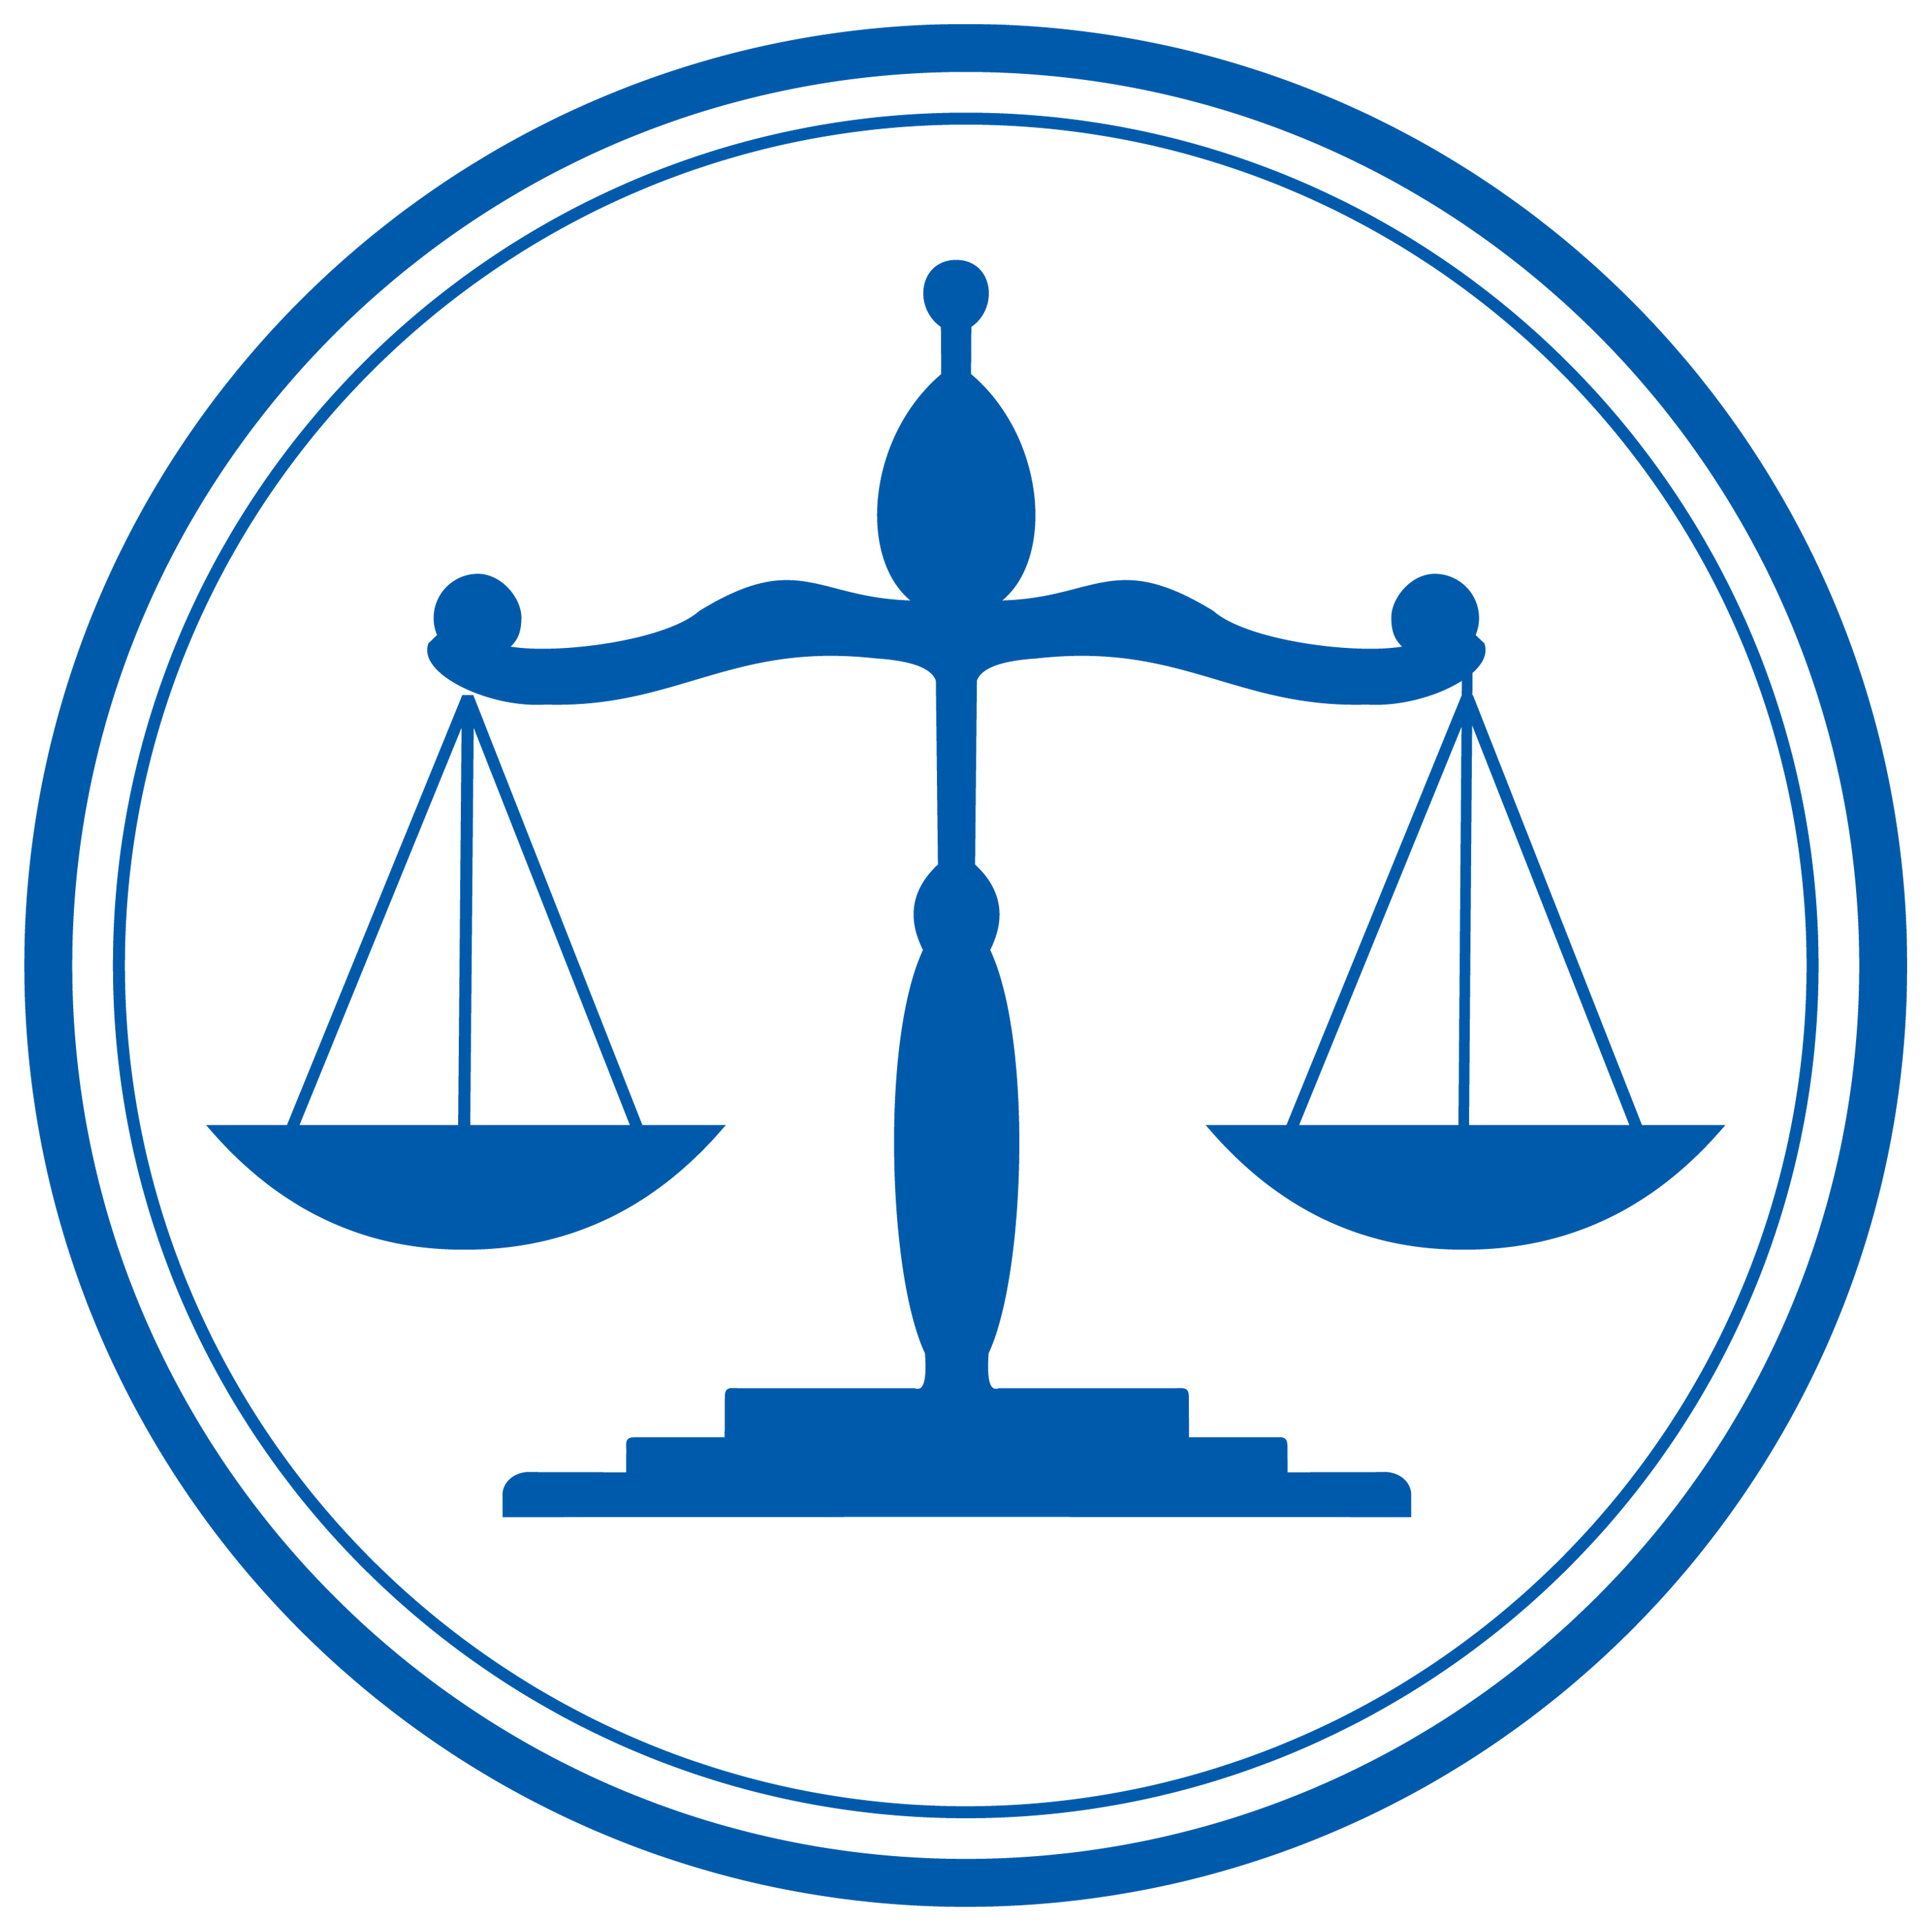 Scale Of Justice Clip Art - ClipArt Best